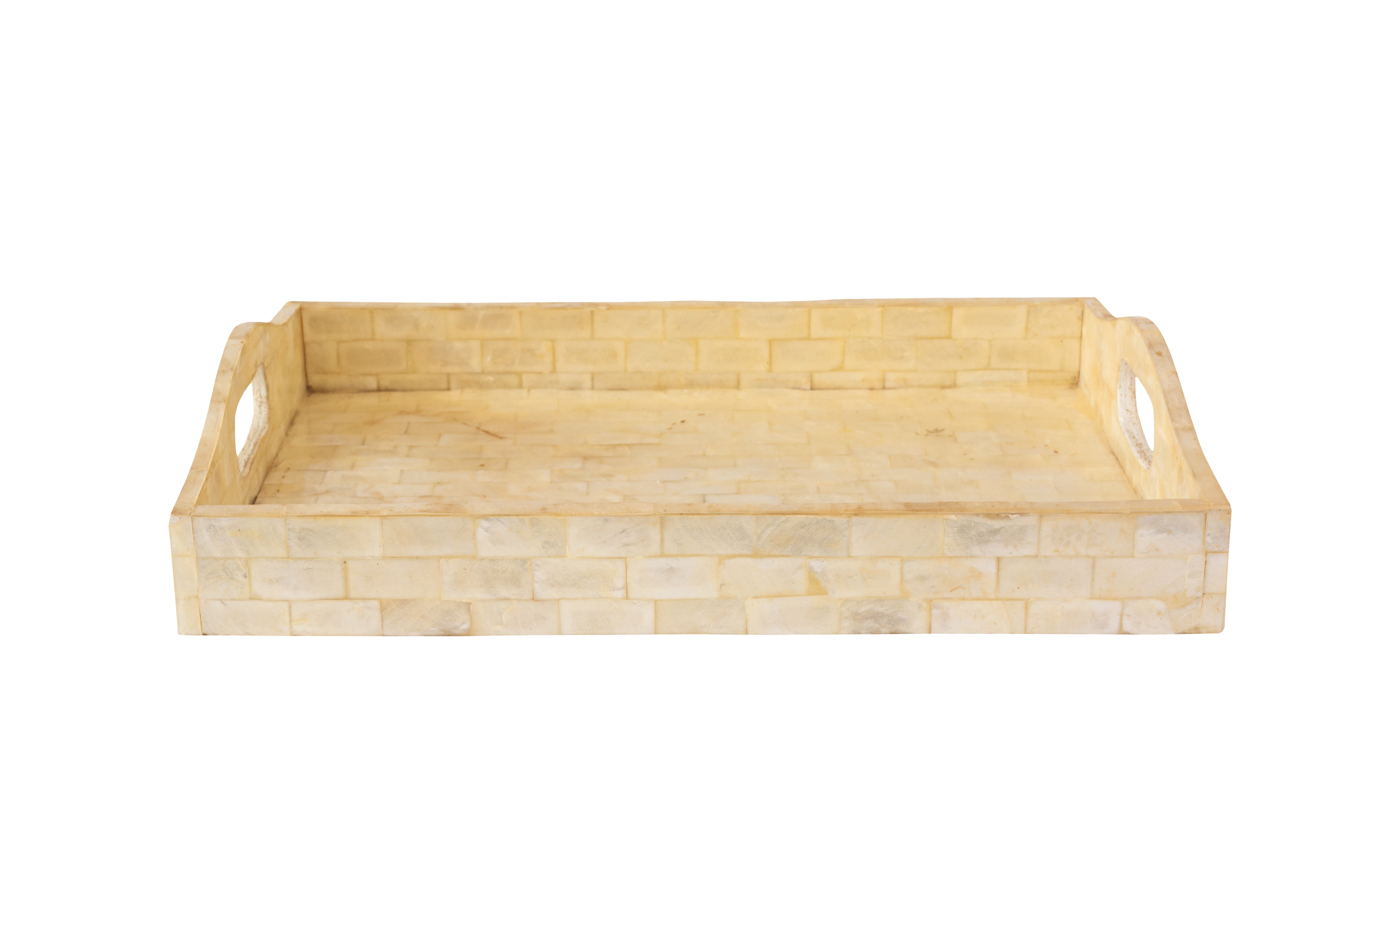 Rectangular wooden tray covered with mother-of-pearl - Beige